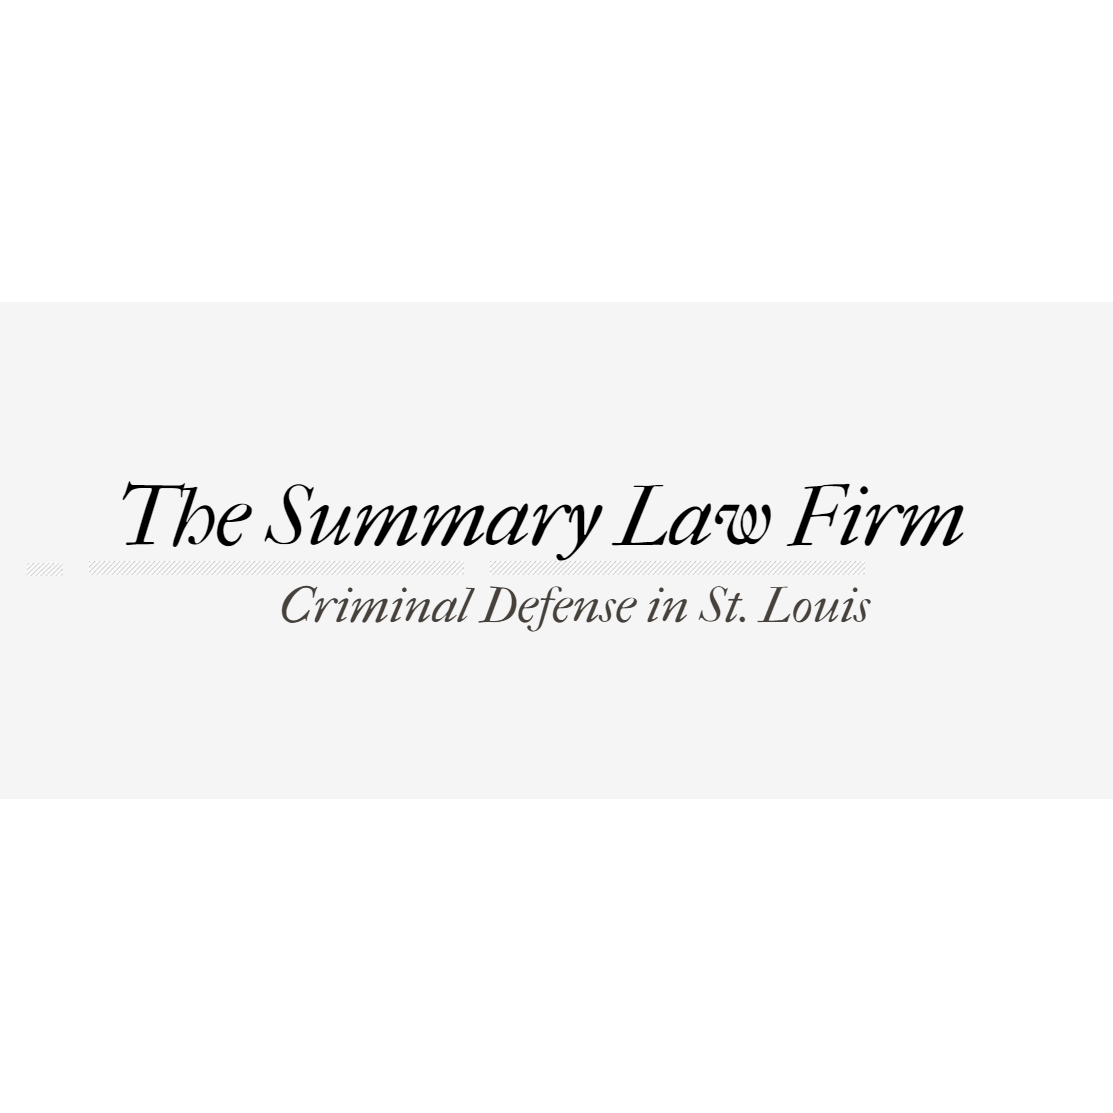 The Summary Law Firm